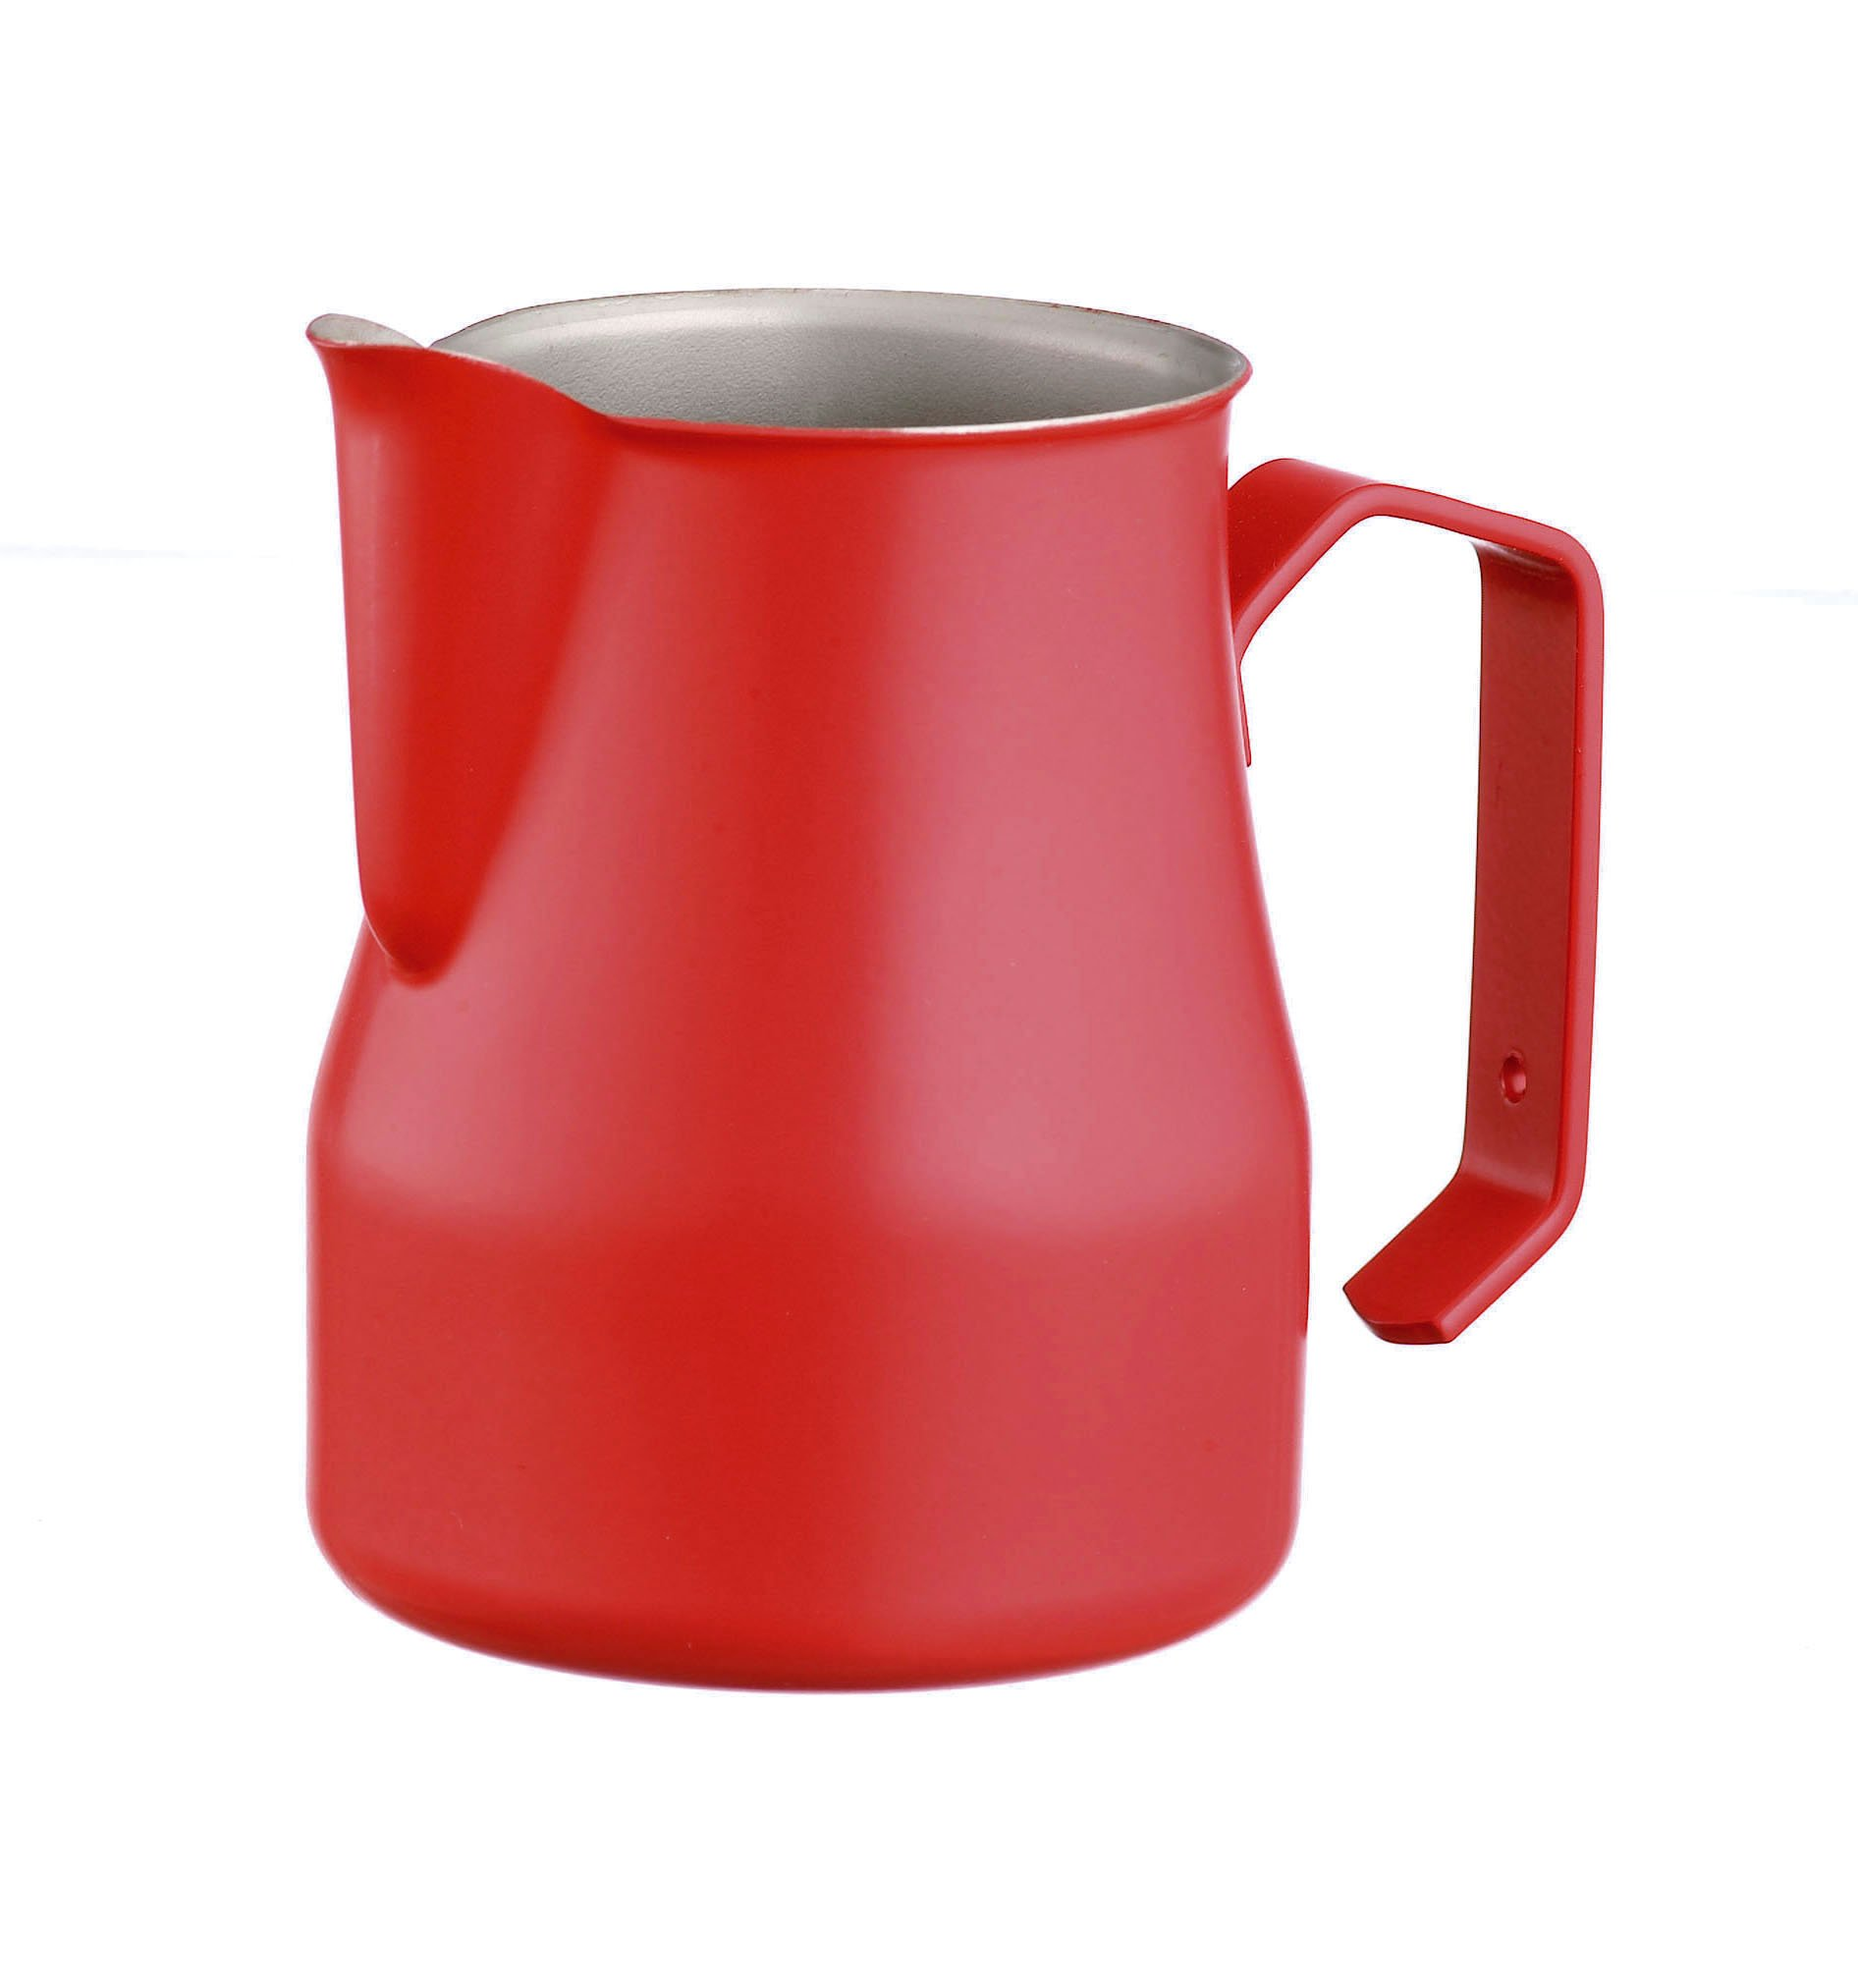 Motta 35cl Stainless Steel Professional Milk Pitcher, 11.8 Fluid Ounce, Red